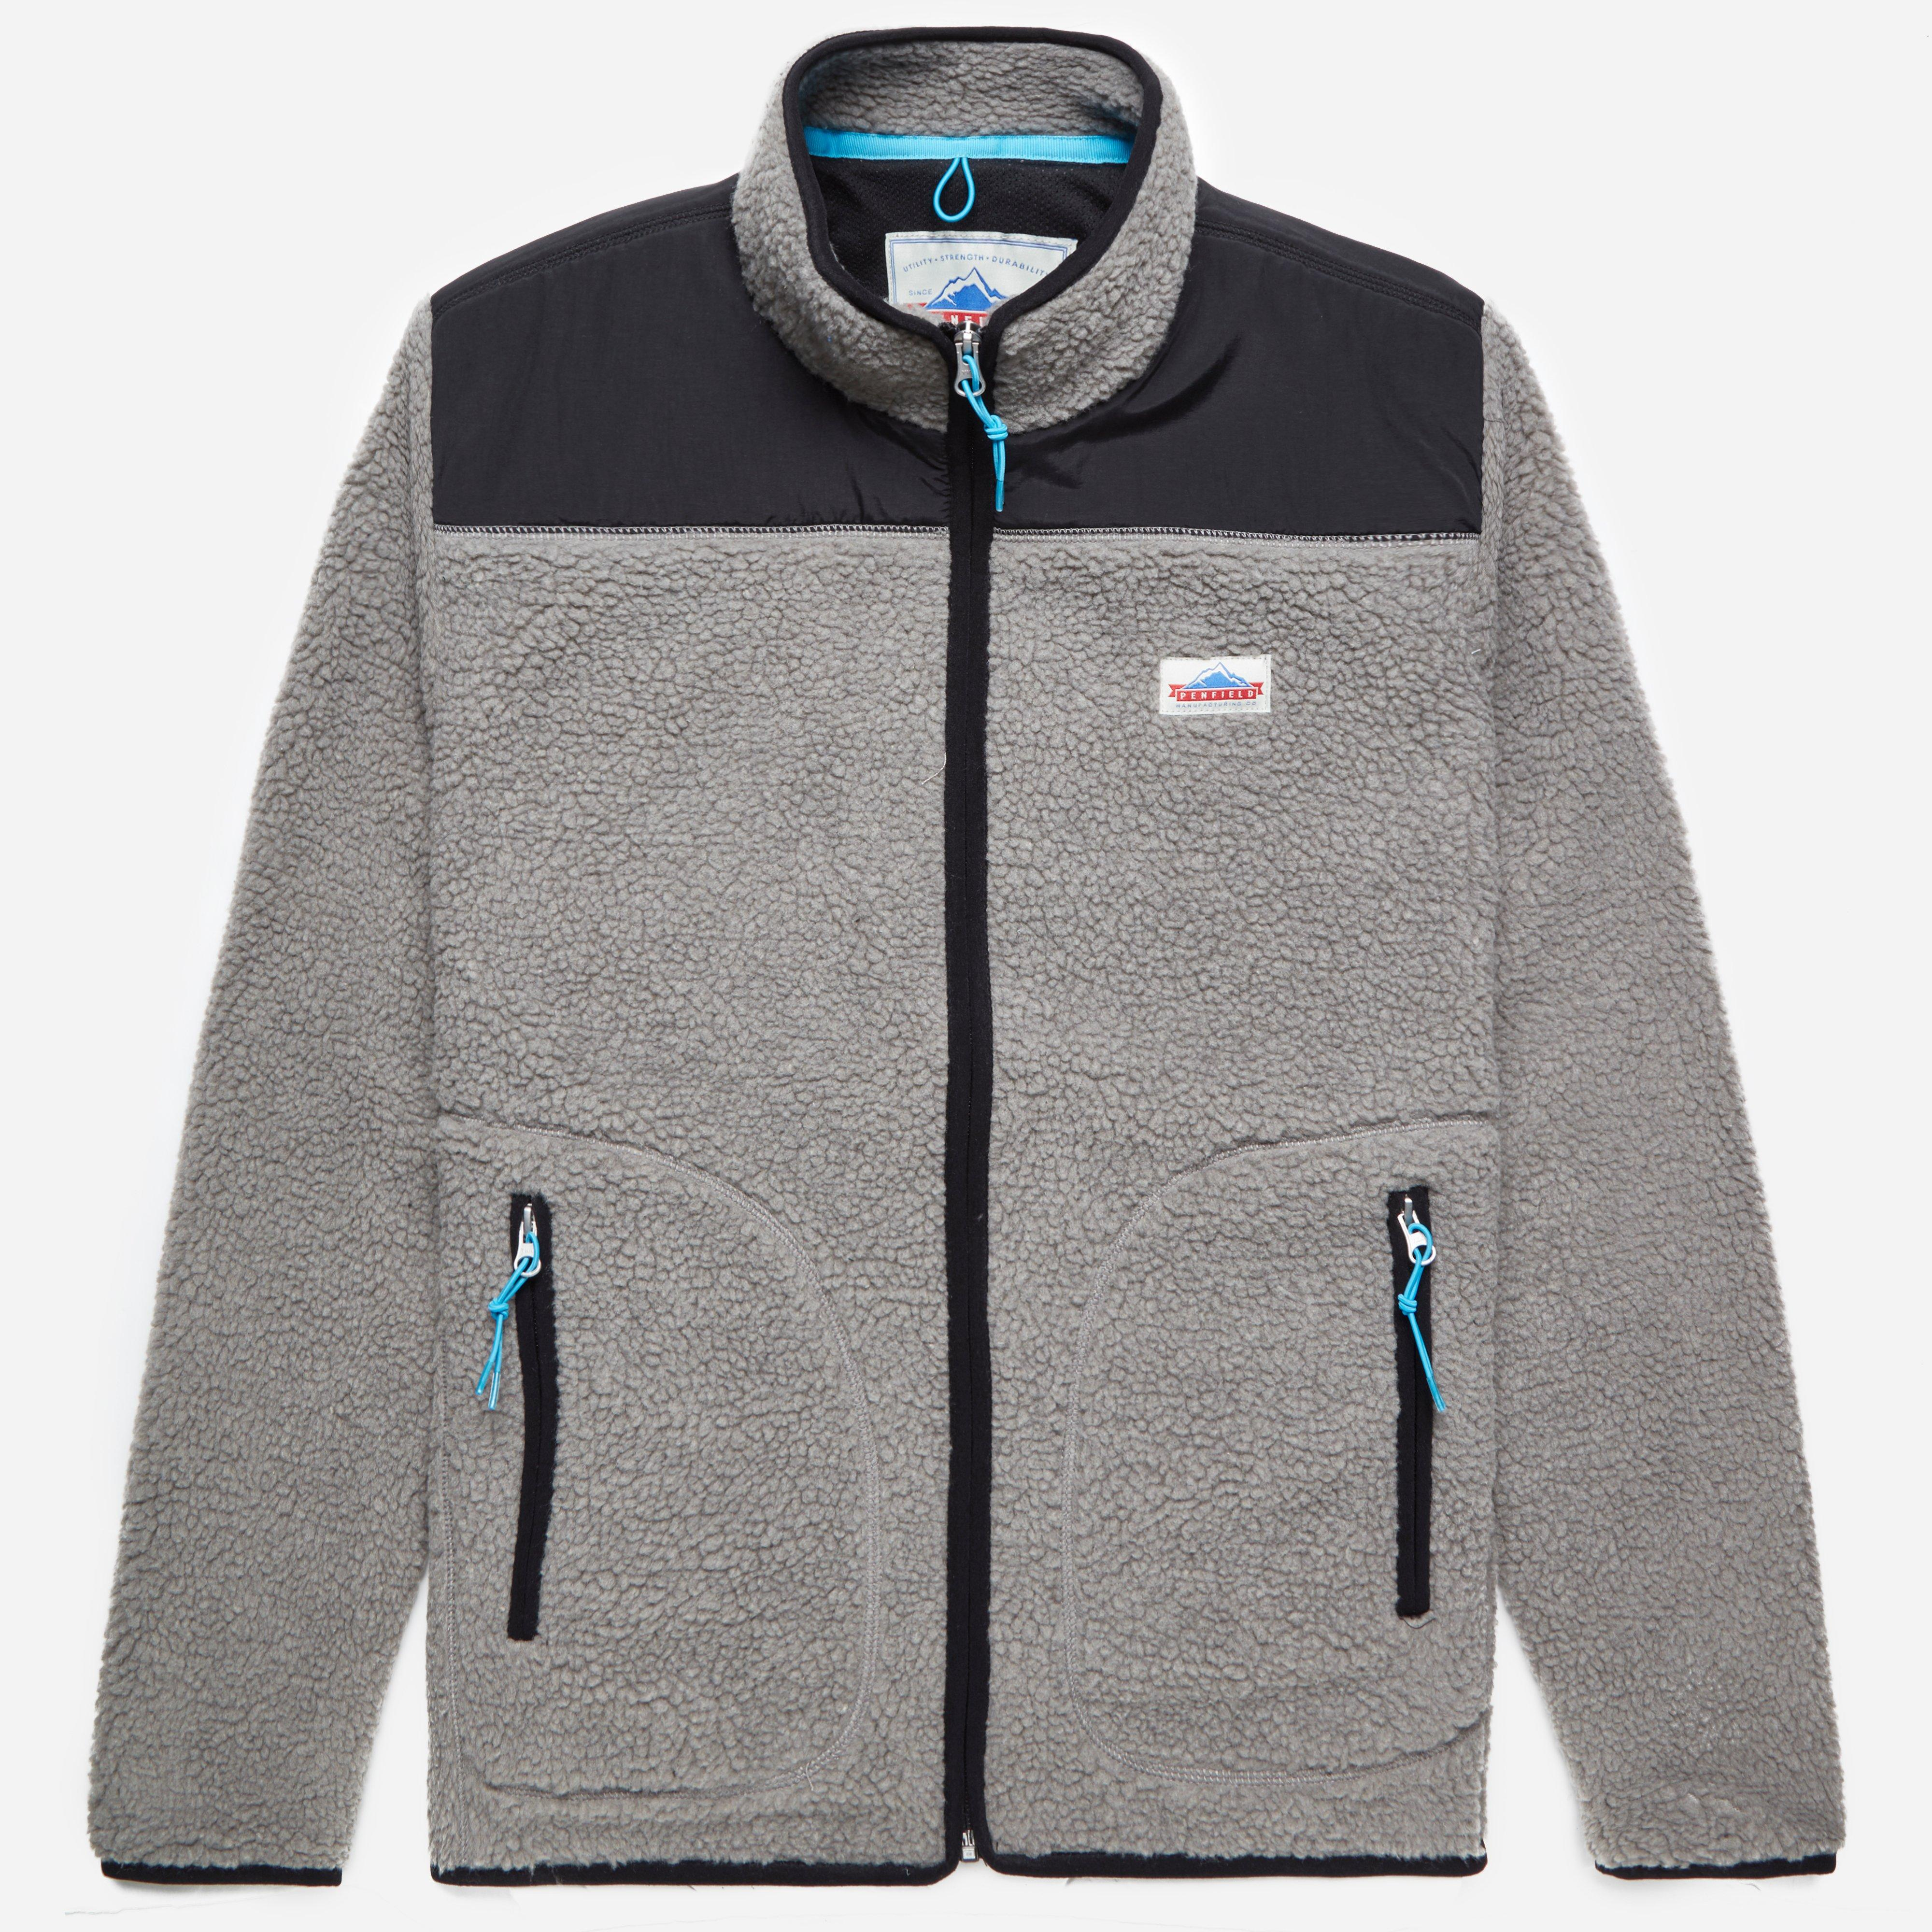 Penfield Mattawa Fleece Jacket